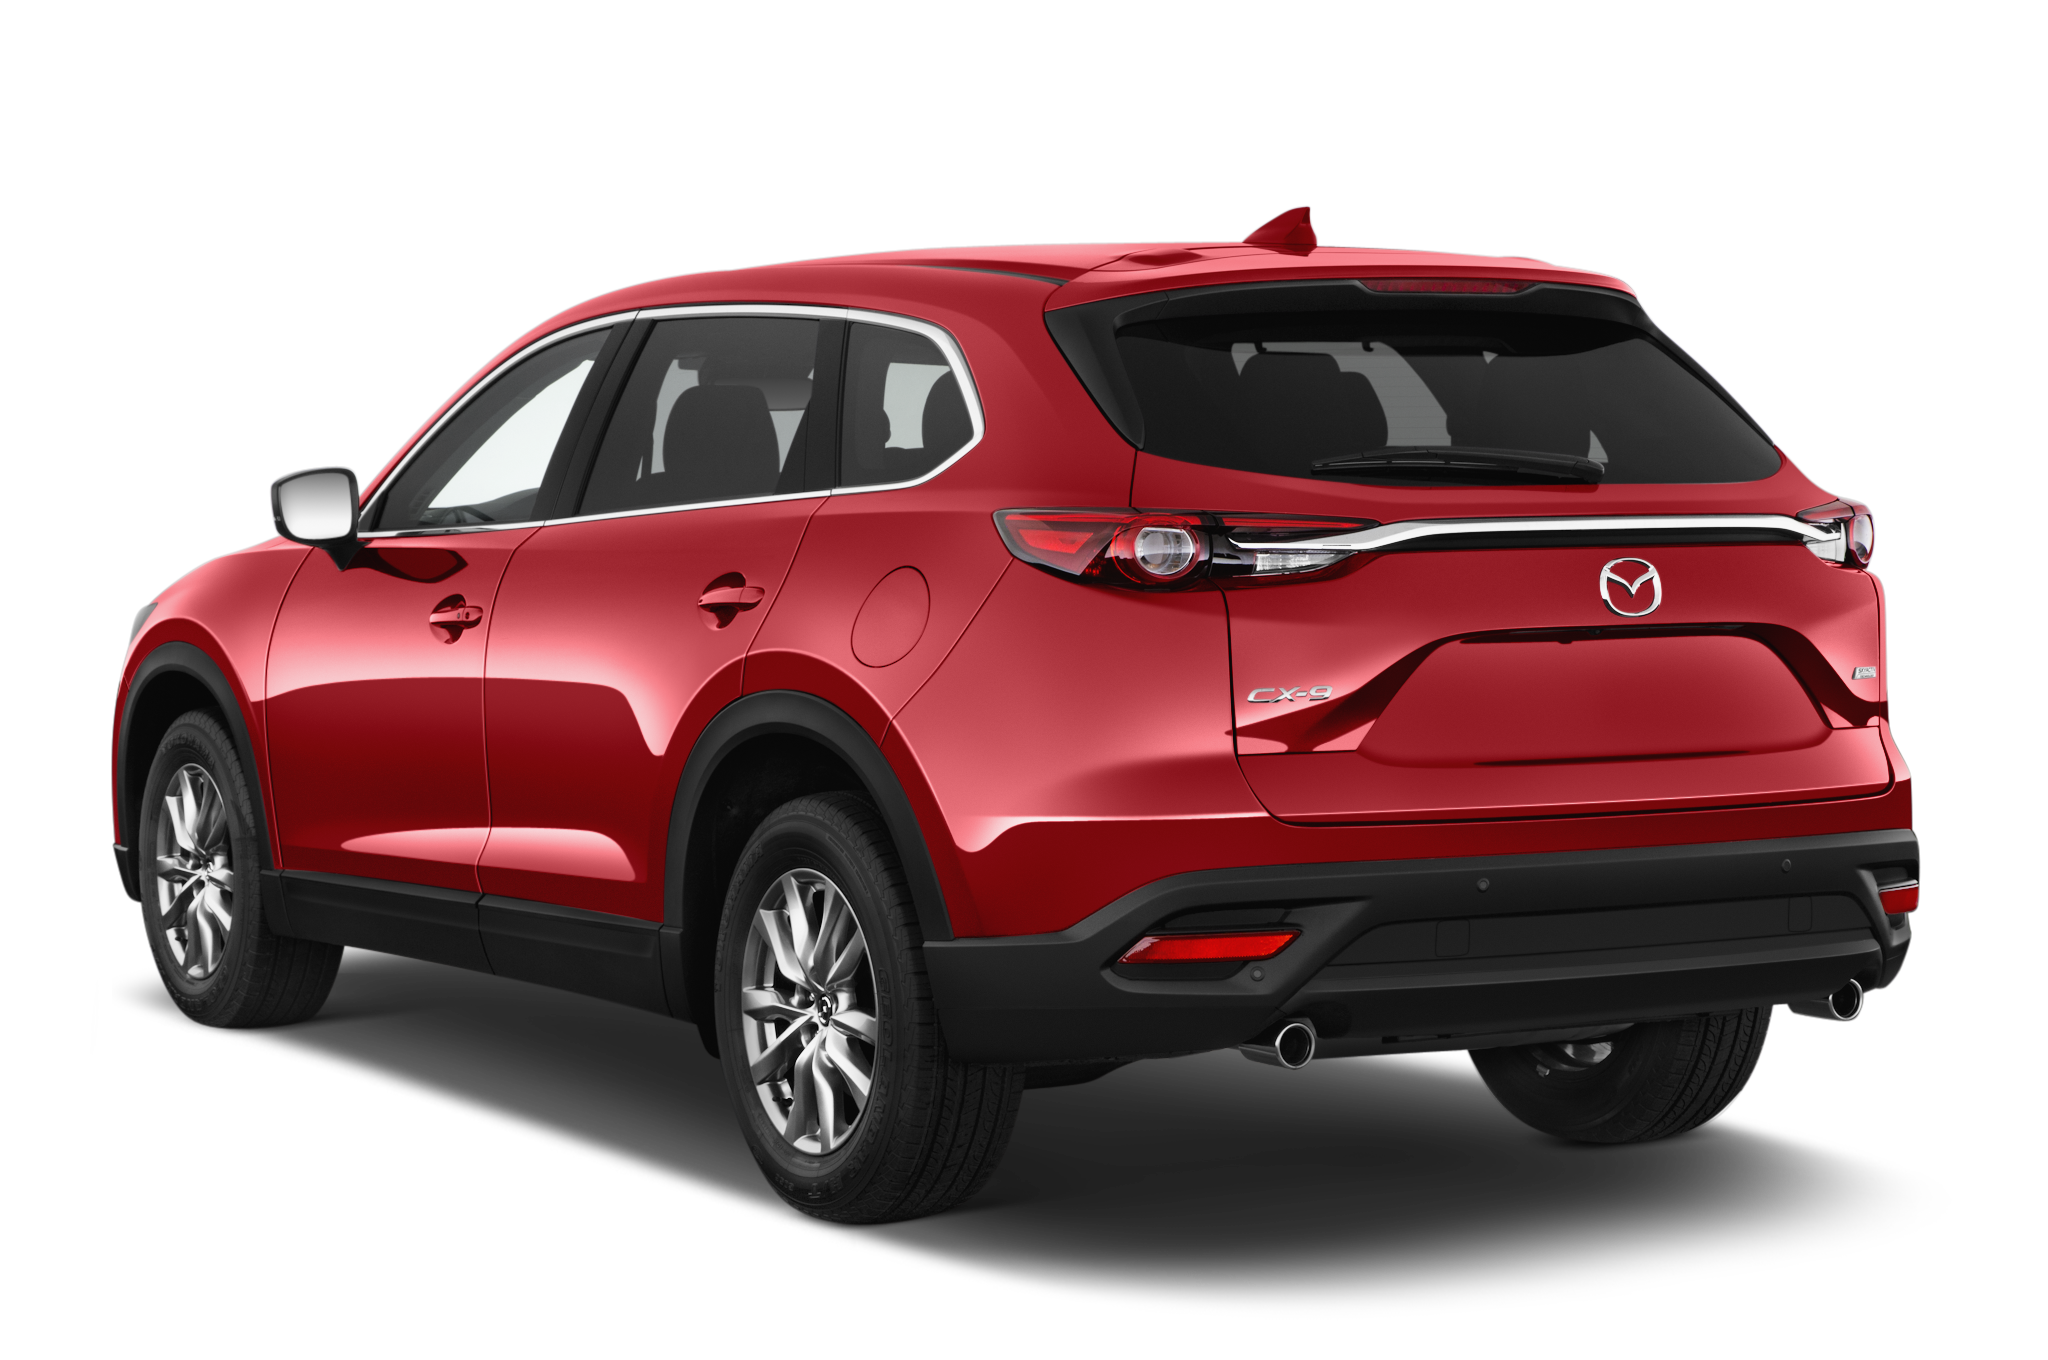 2016 mazda cx 9 priced at 32 420 automobile magazine. Black Bedroom Furniture Sets. Home Design Ideas